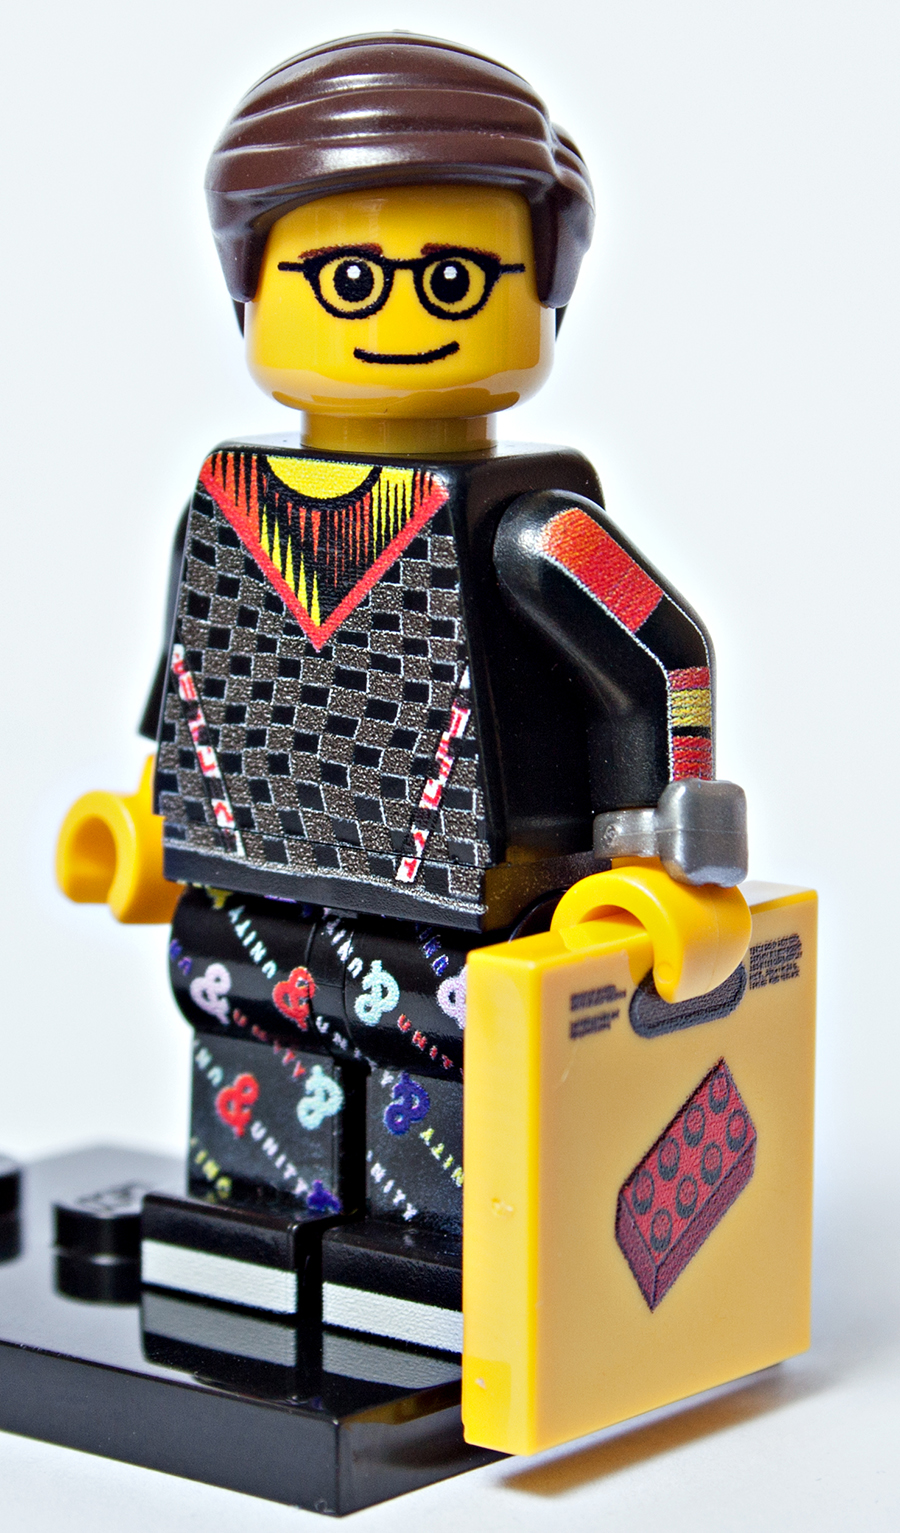 Creating A Custom Minifigure With Minifigs me | BricksFanz